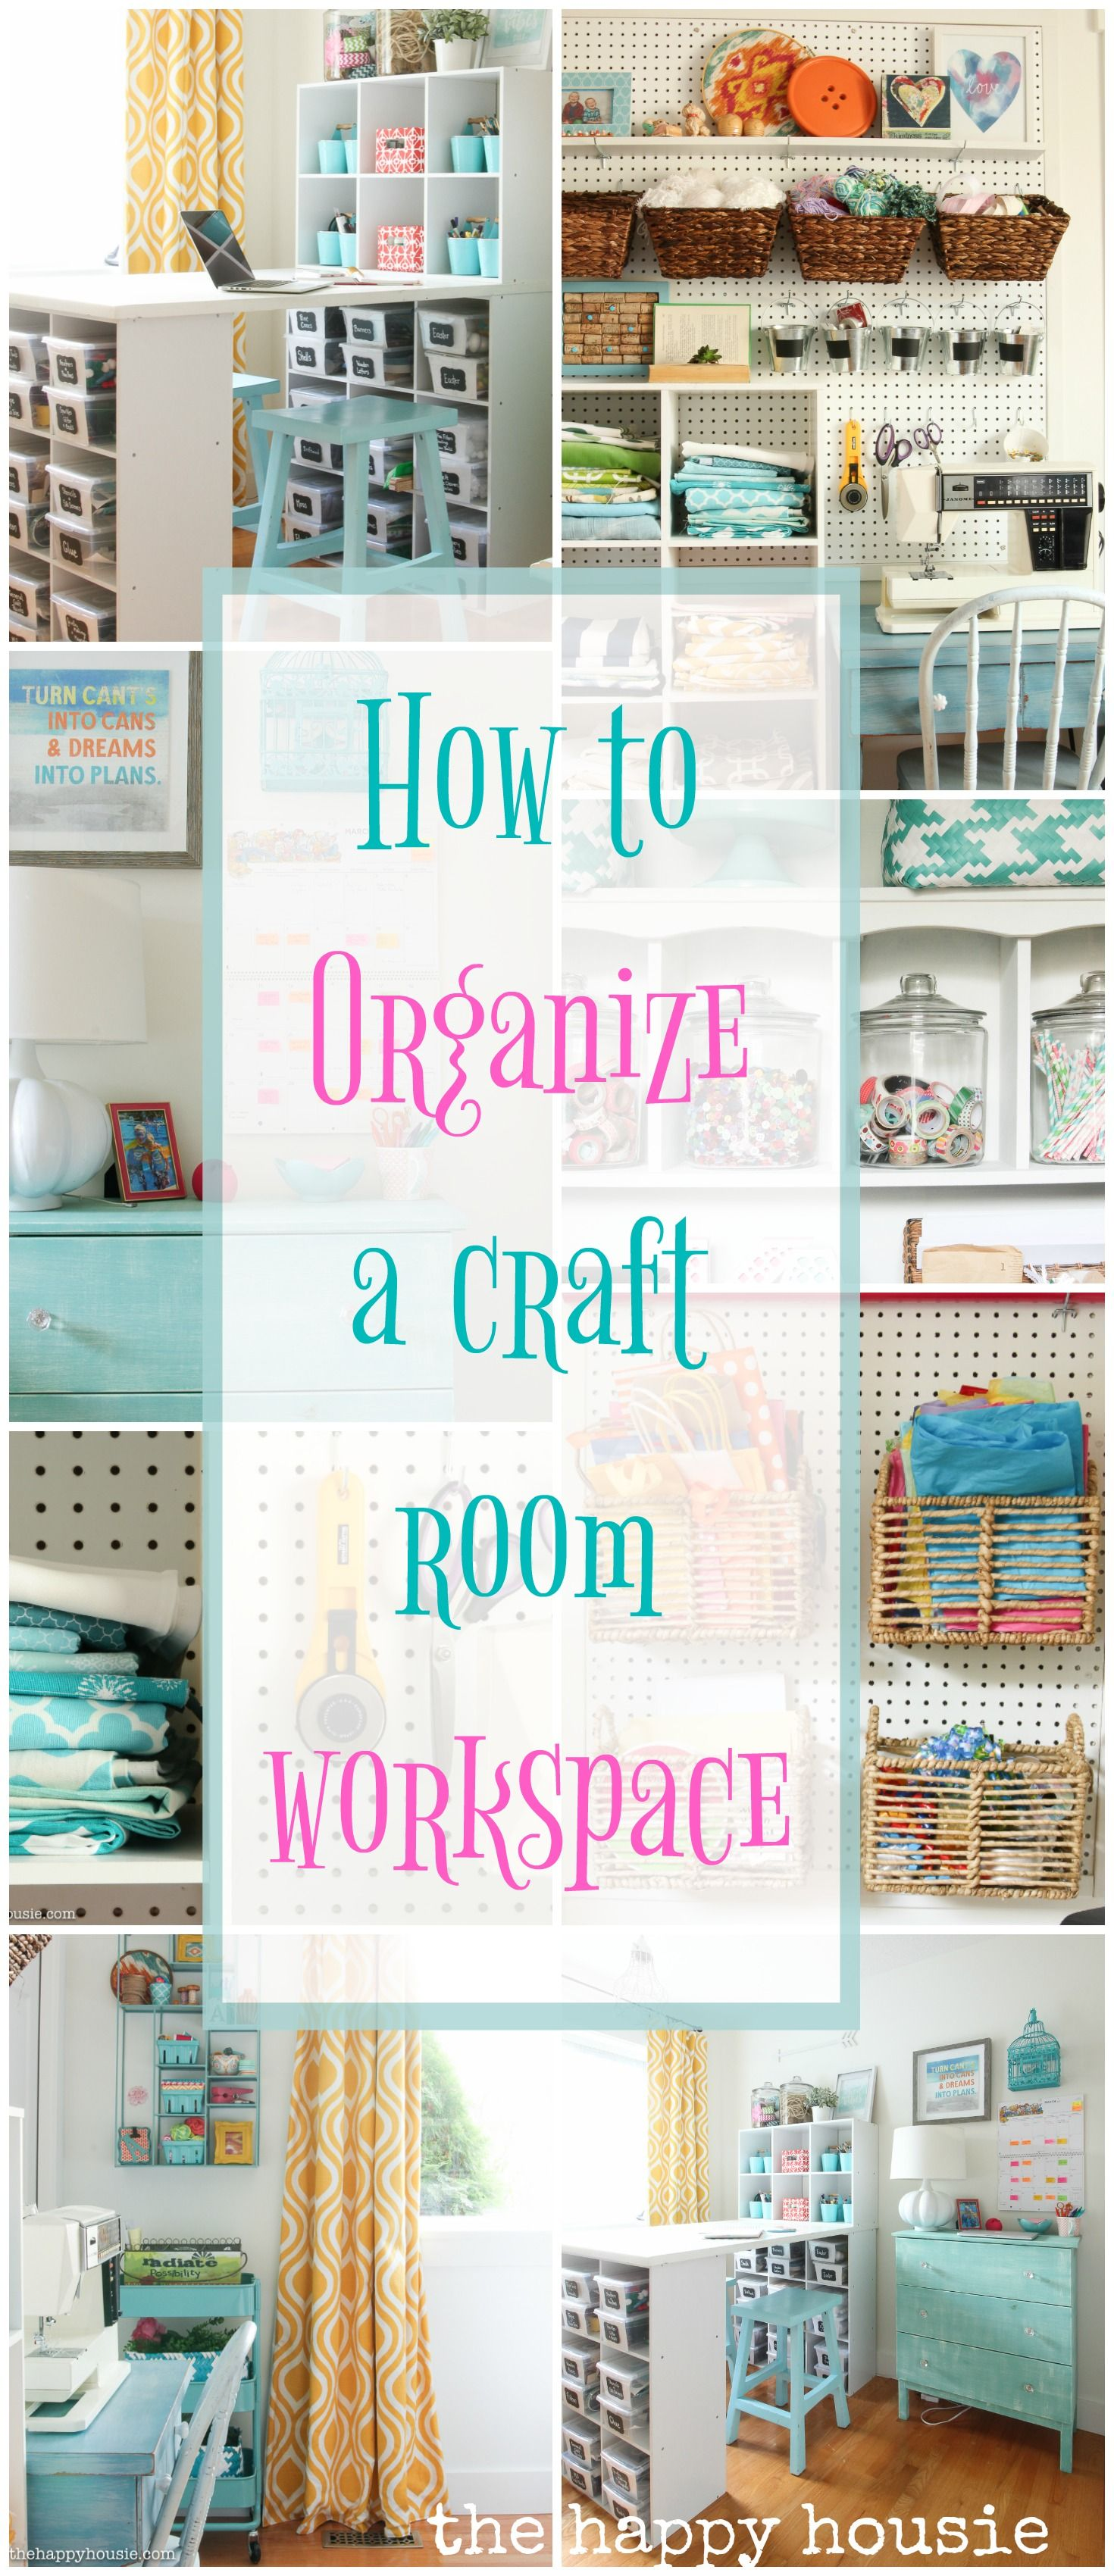 How to Organize a Craft Room Work Space | The Happy Housie